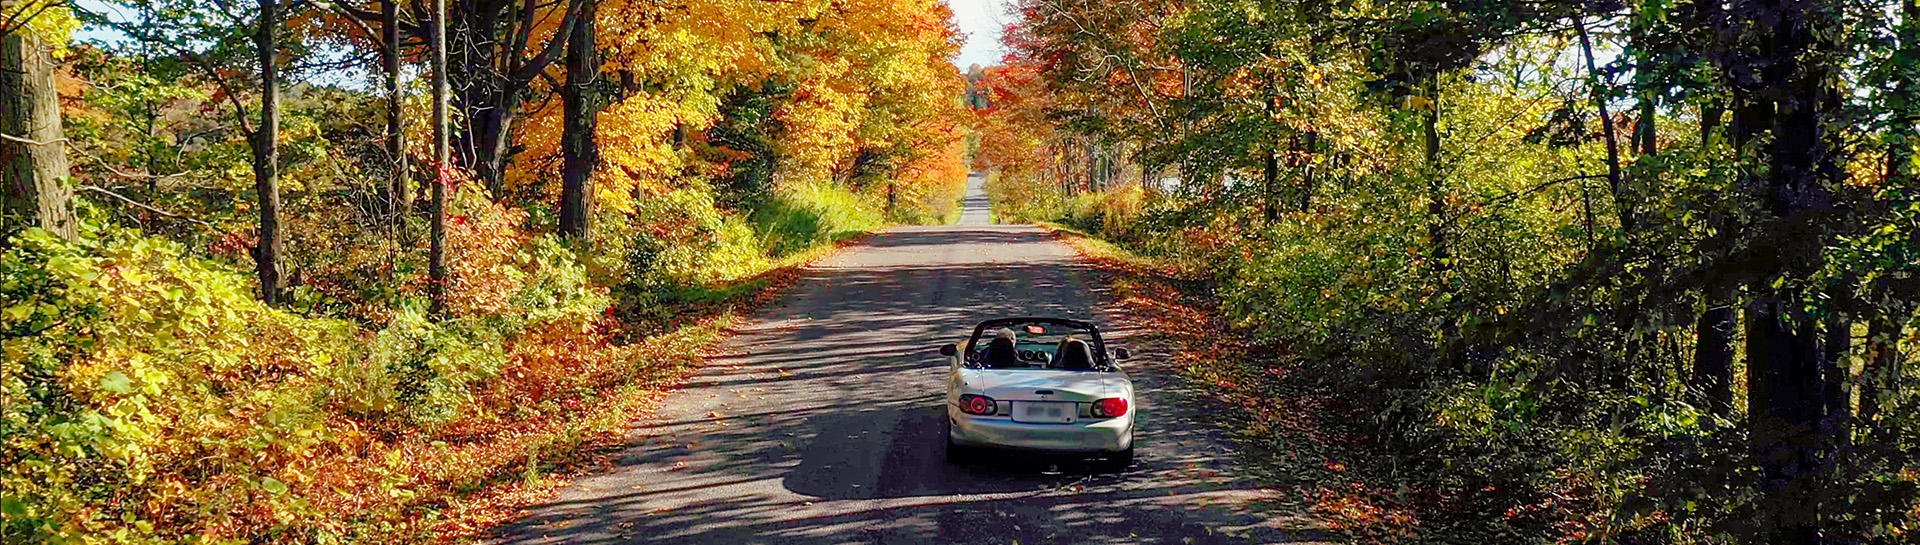 Rear of convertible on country road in fall